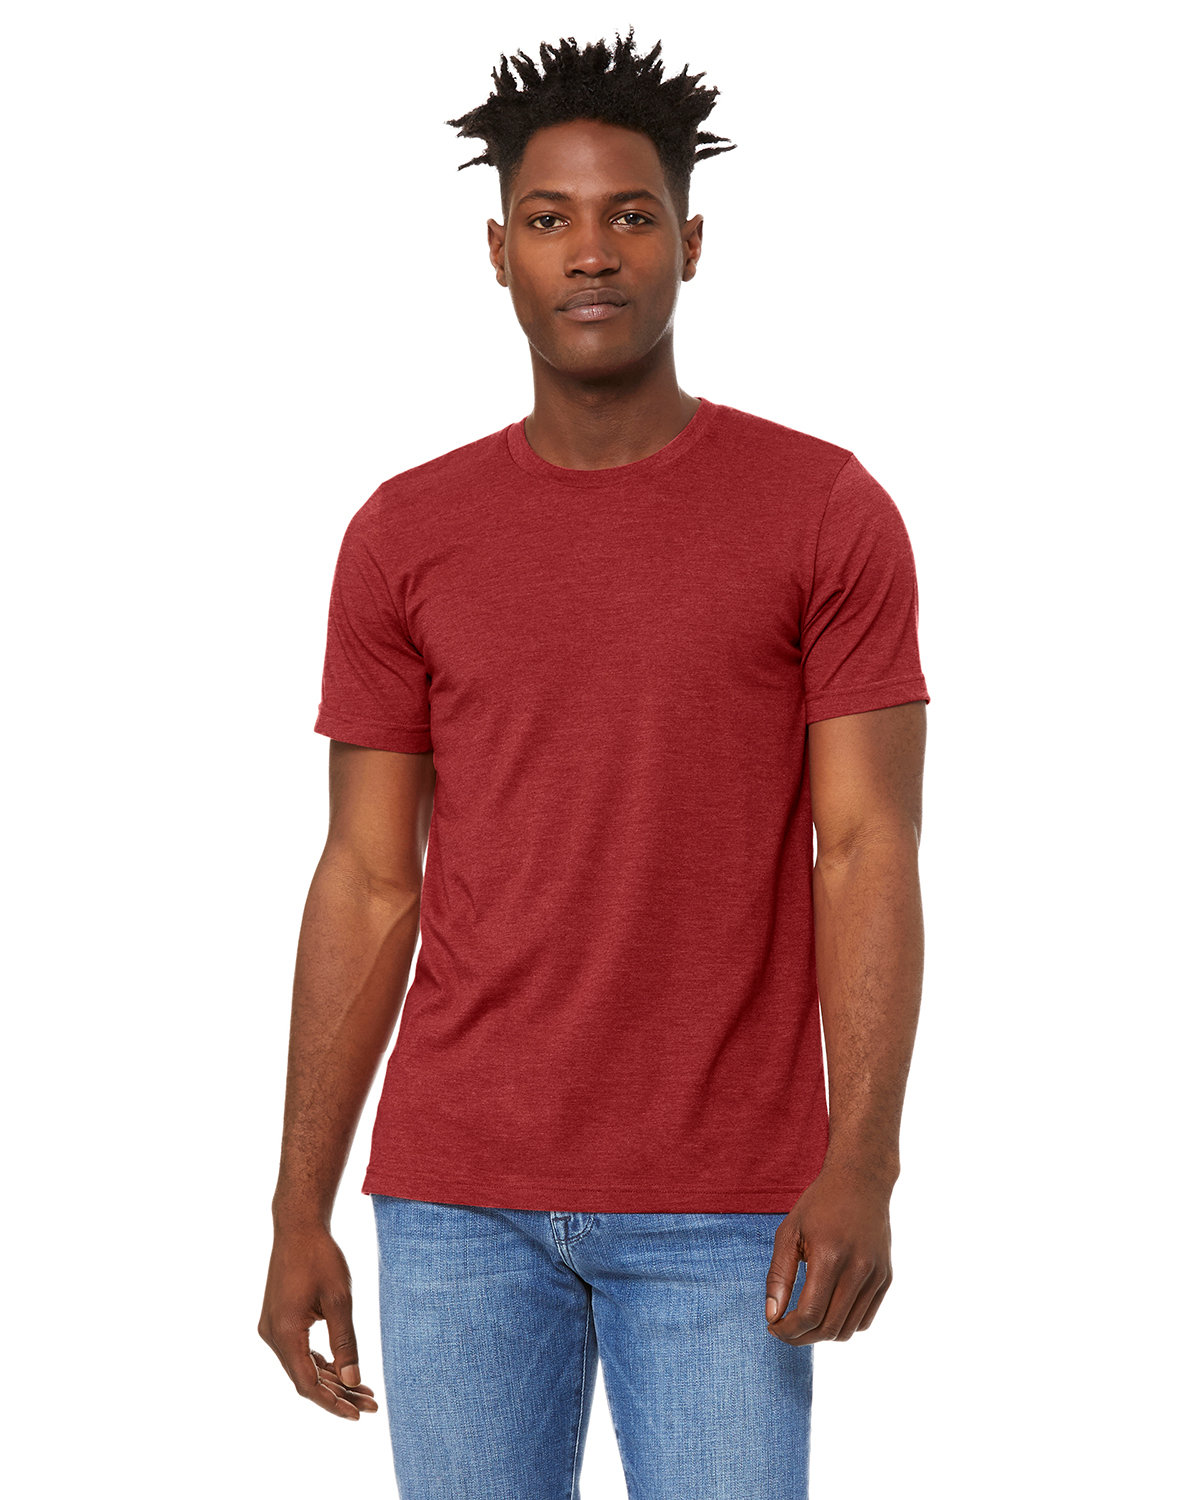 Bella + Canvas Unisex Heather CVC T-Shirt HTHR CANVAS RED